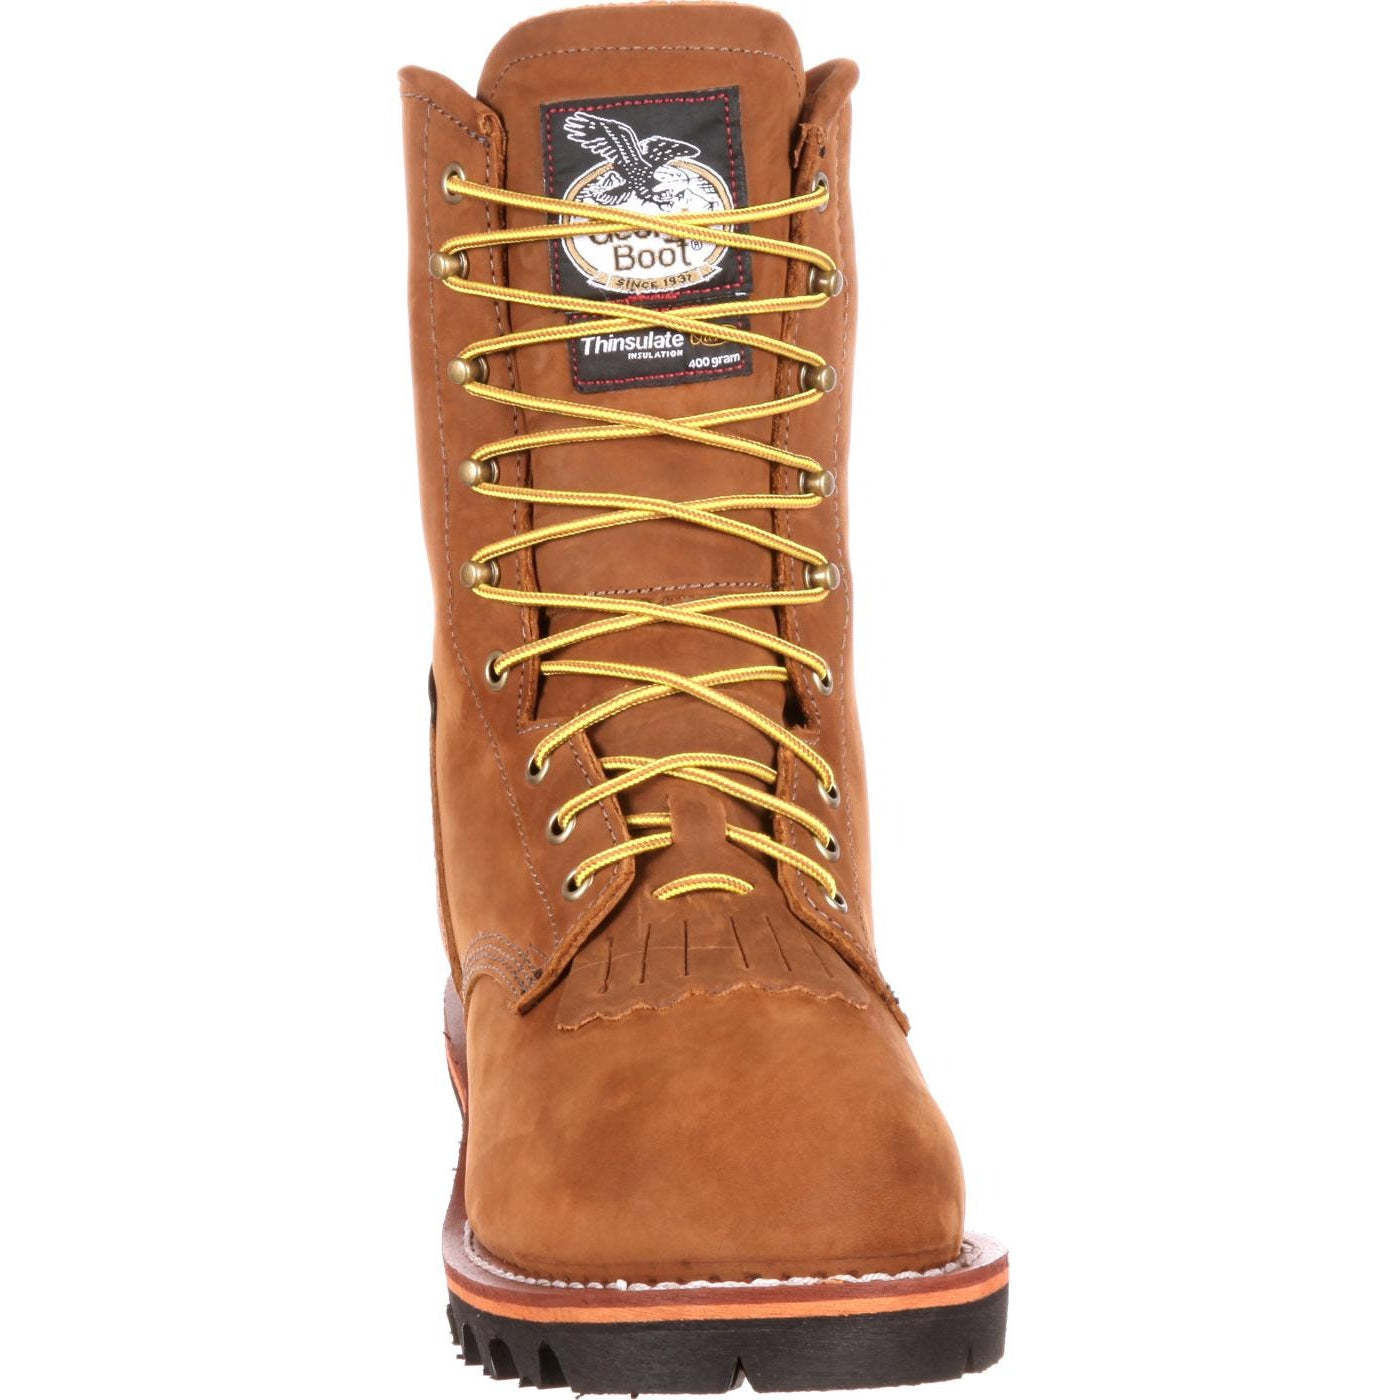 ... Men s Georgia Boots Steel Toe GORE-TEX® Waterproof Insulated Steel Toe  Logger Work Boots ... 4fb83f54a257